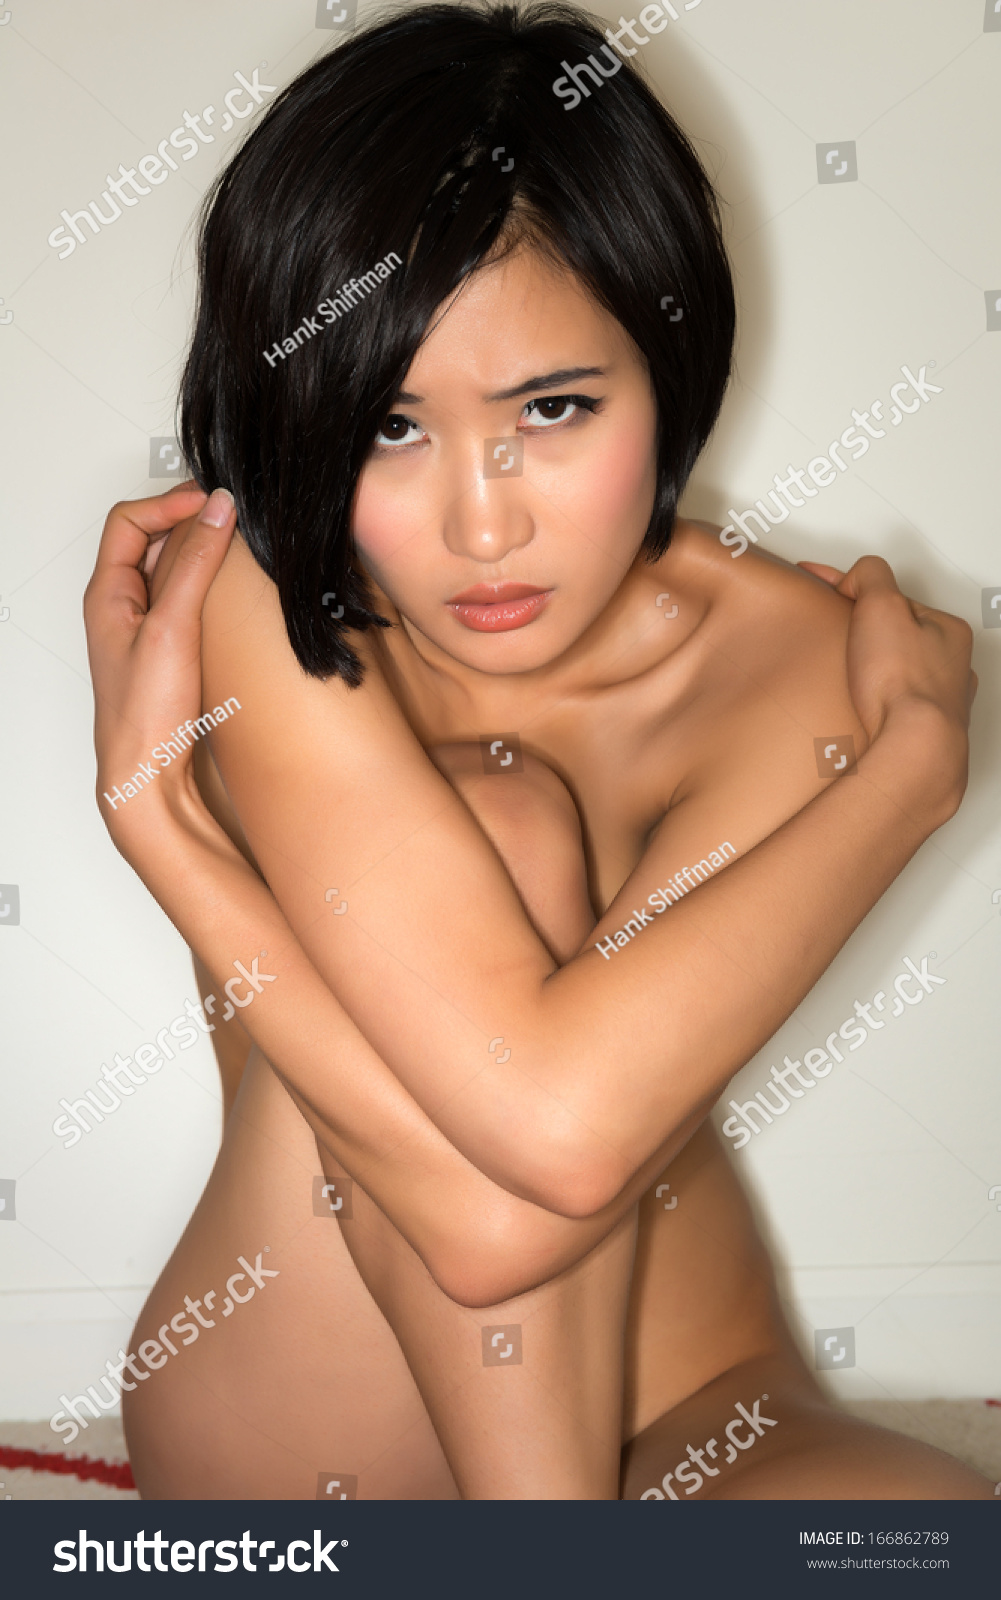 young asian nude